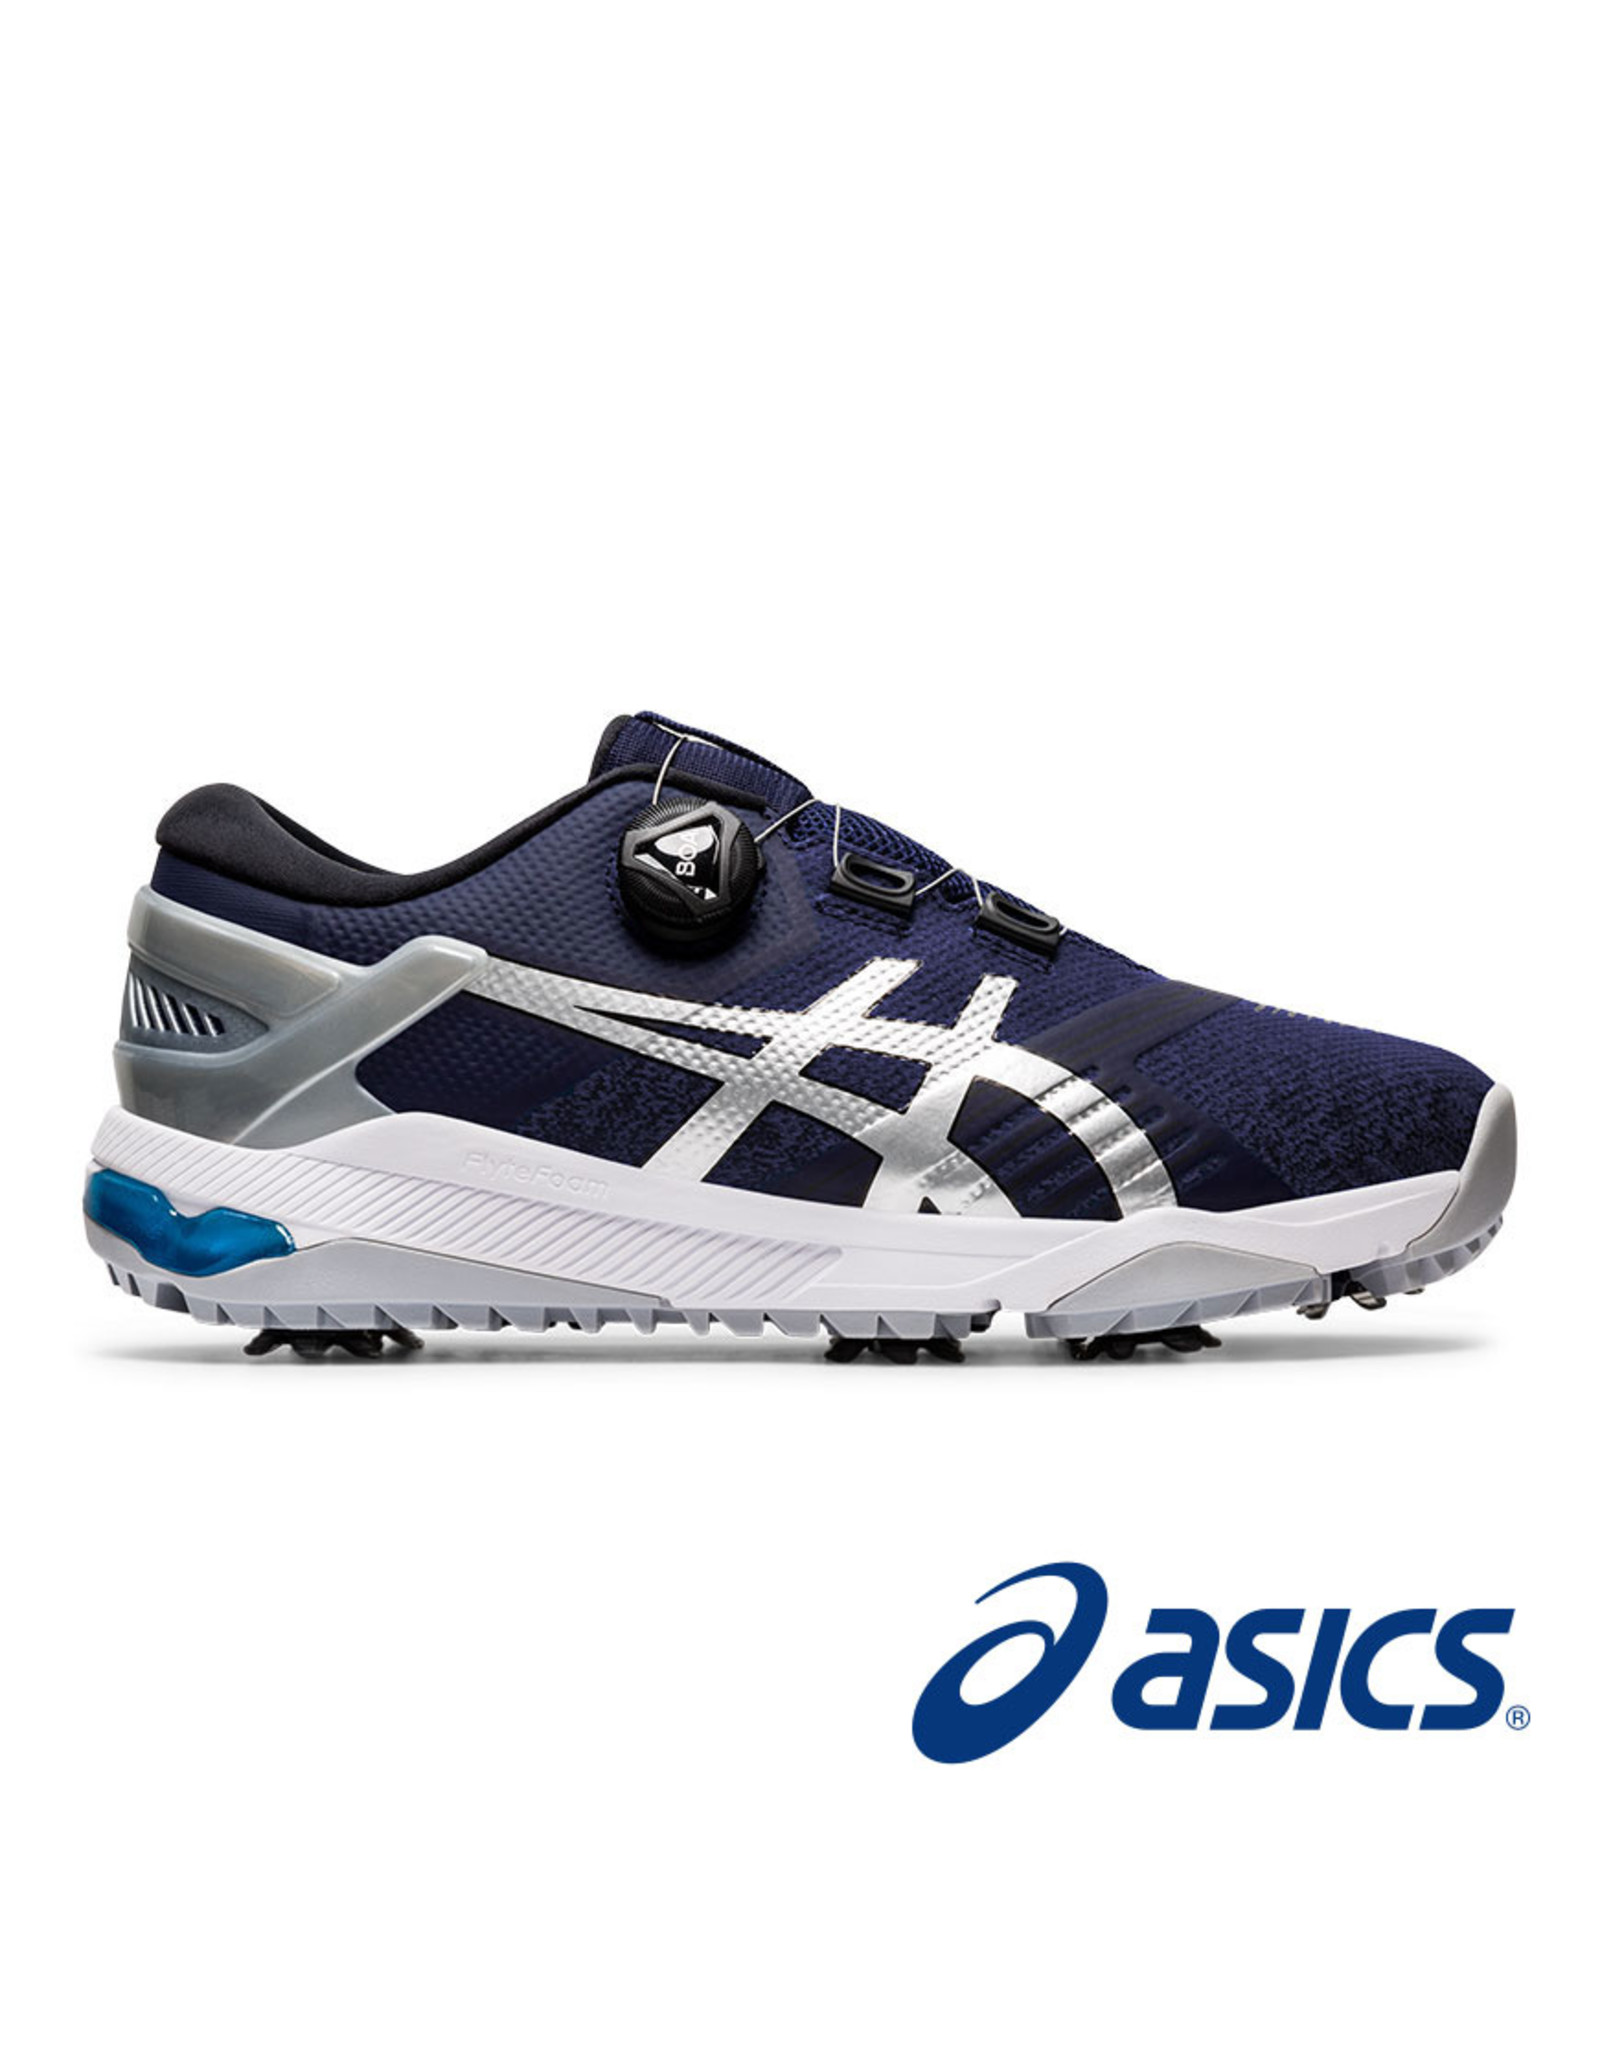 Asics Asics Gel Duo Boa Shoe